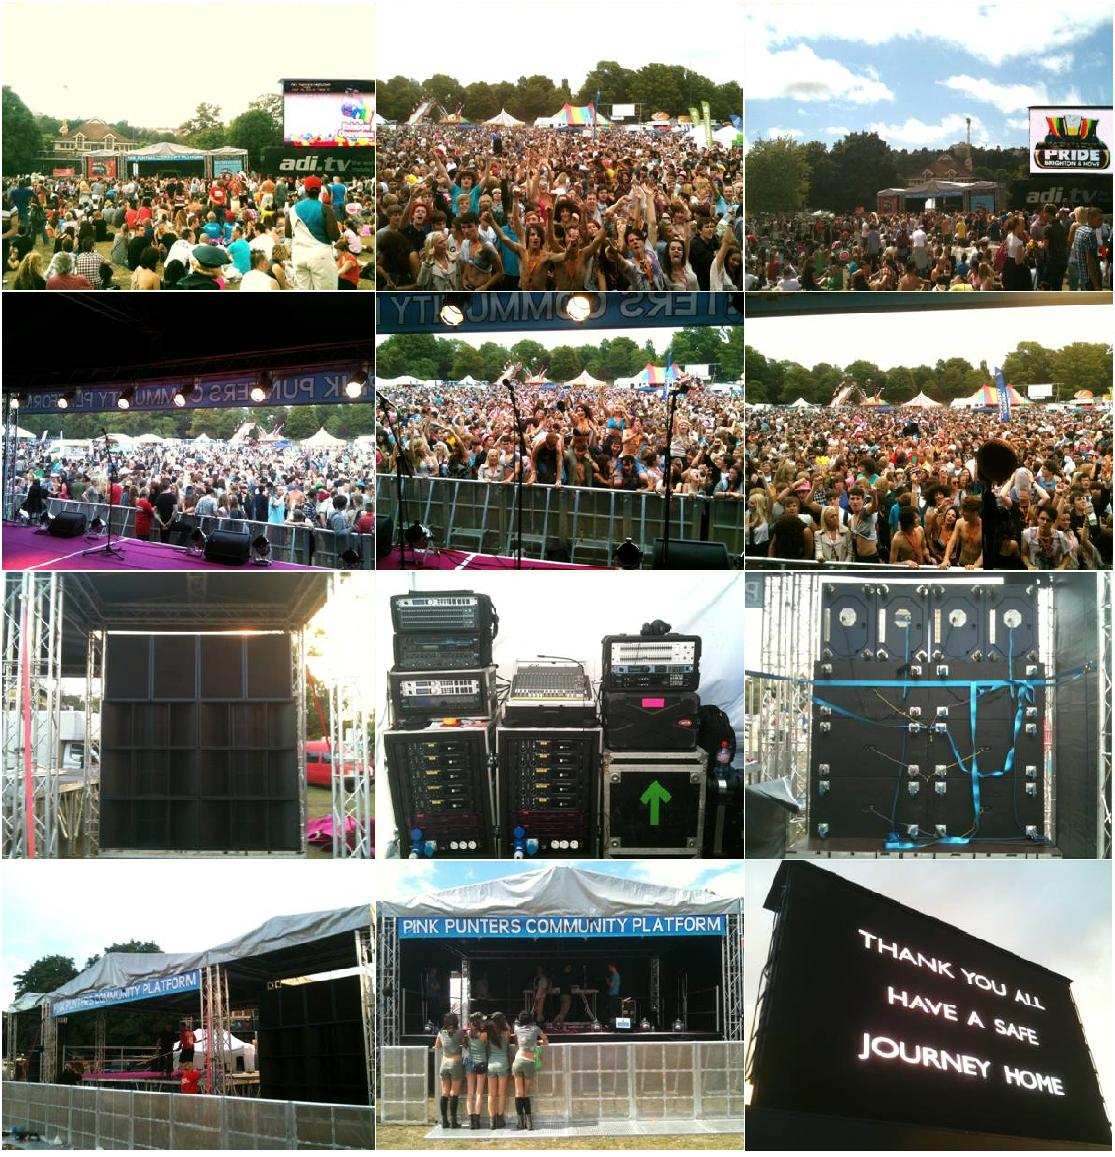 PRIDE_BRIGHTON_COMMUNITY_STAGE_2010.jpg